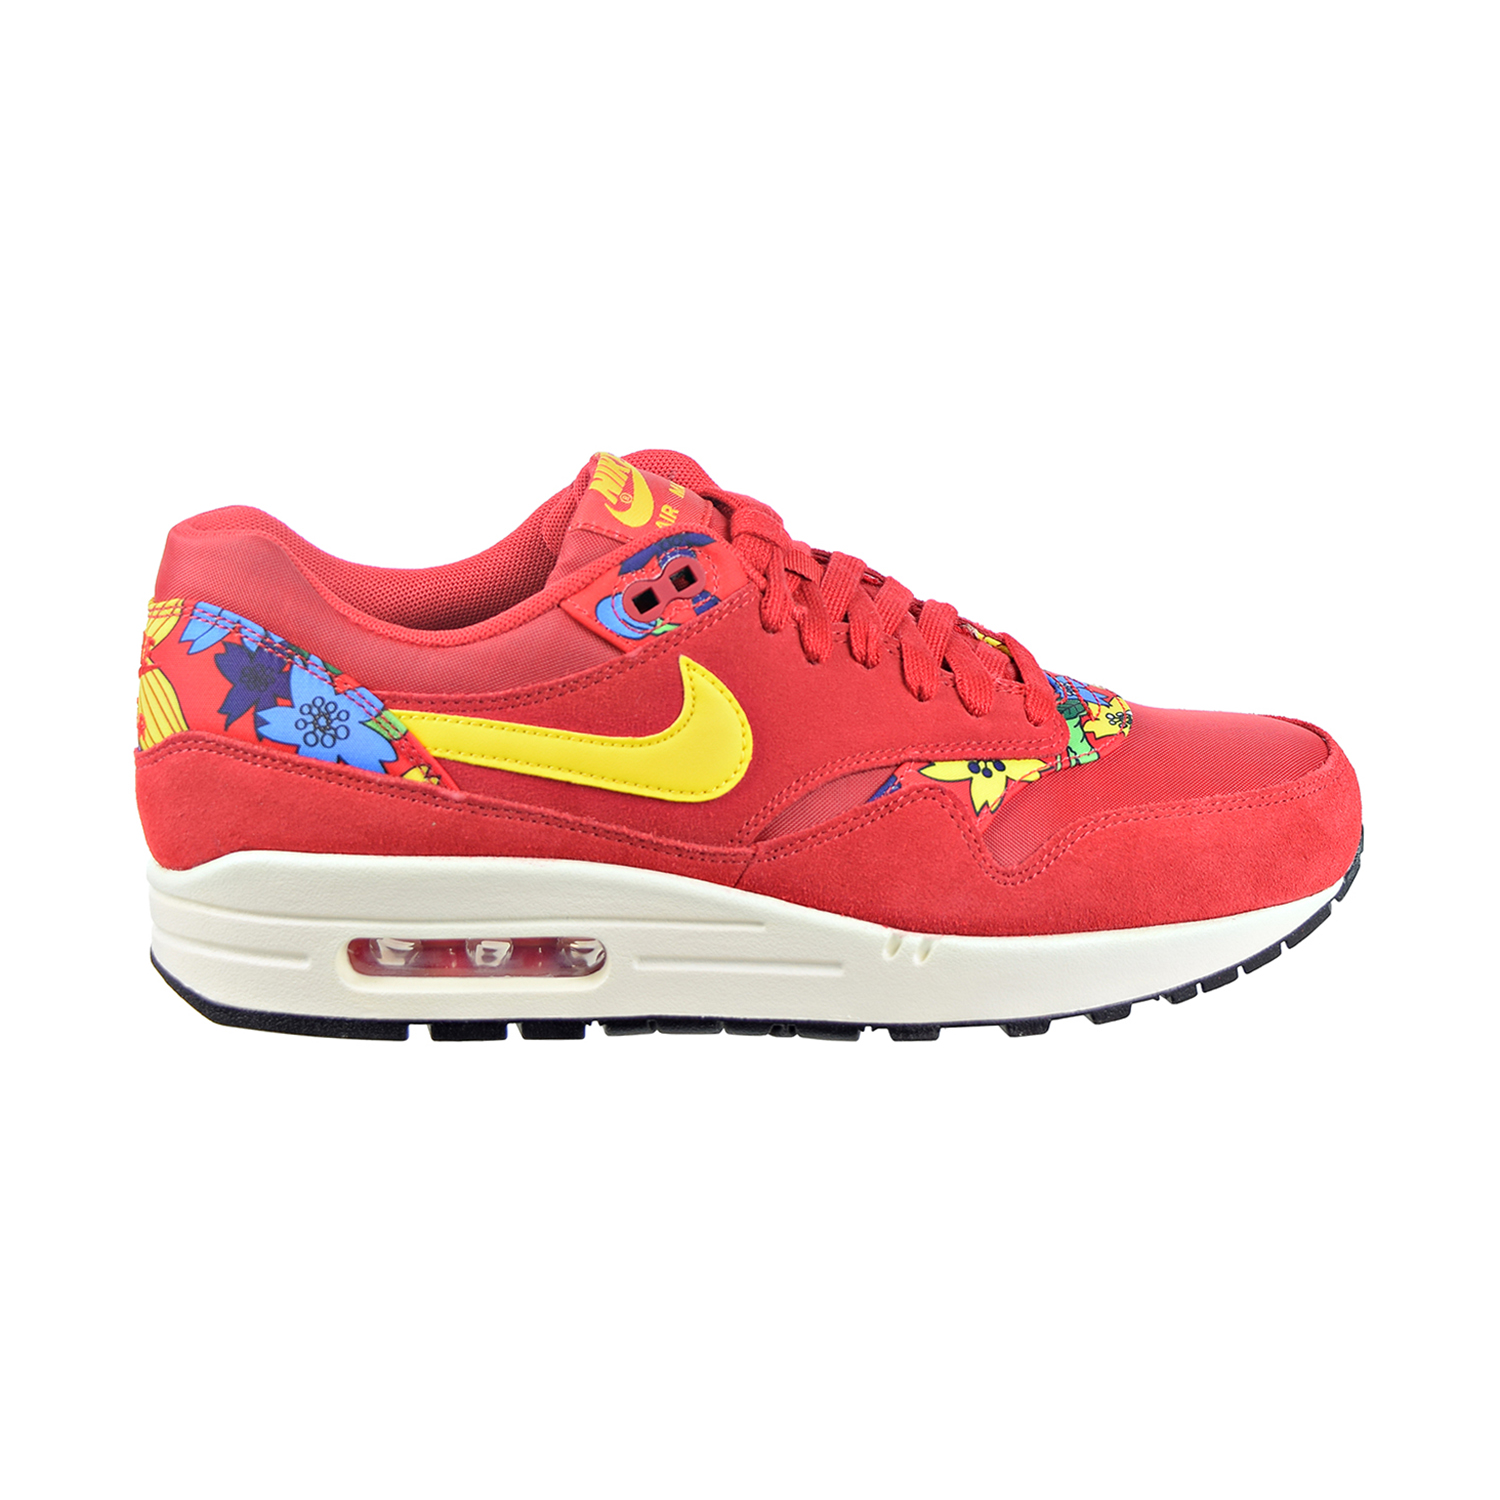 Nike Air Max 1 Print  Aloha  Women s Shoes University Red True  Yellow Silver Black 528898-602 bc62061e9c